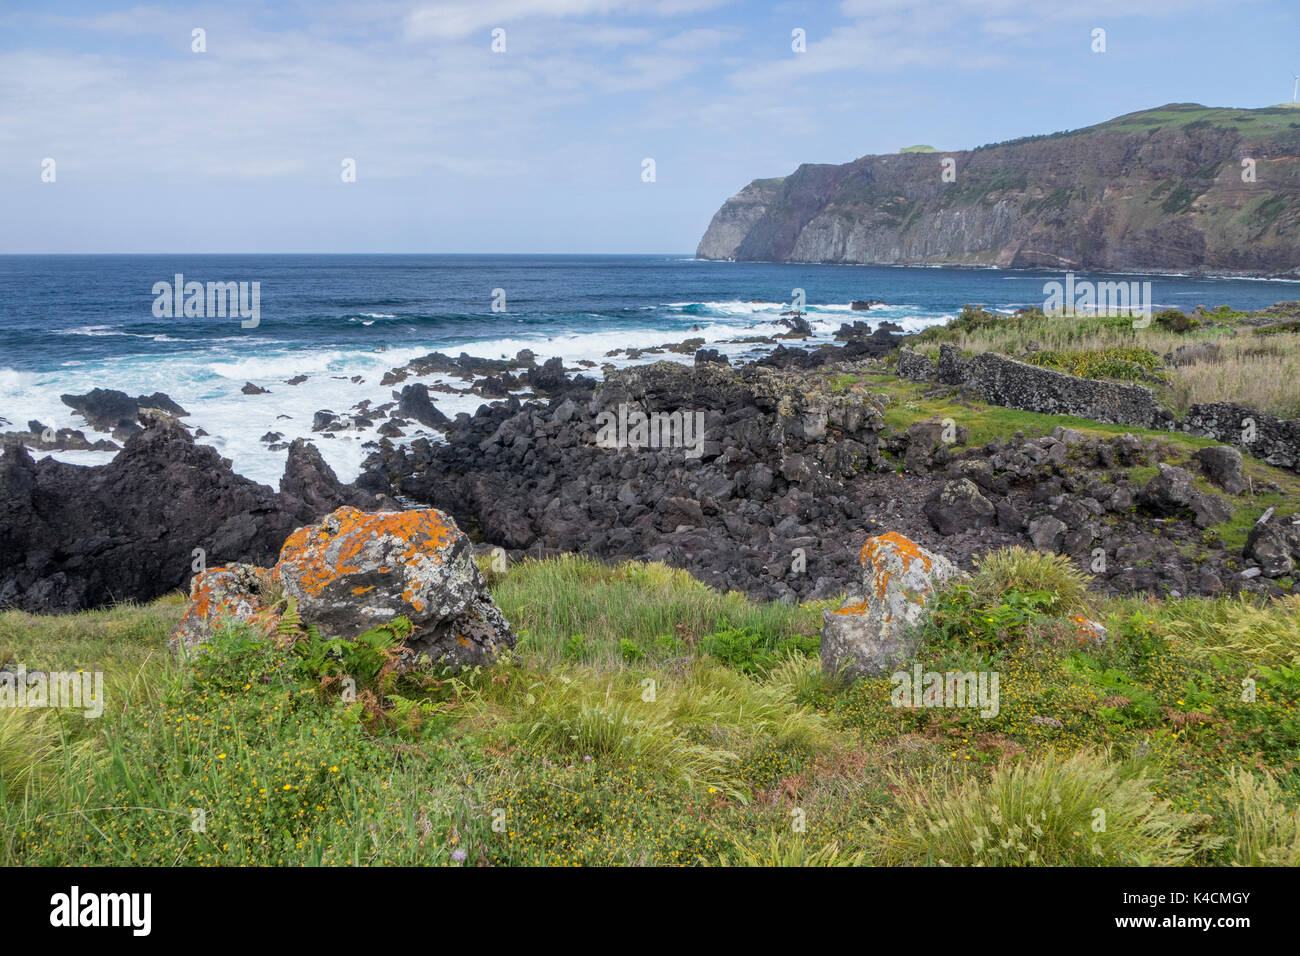 Cliffline With Blue Atlantic And White Surge, In The Front Green Meadow And Volcanic Rocks. Graciosa, Azores - Stock Image